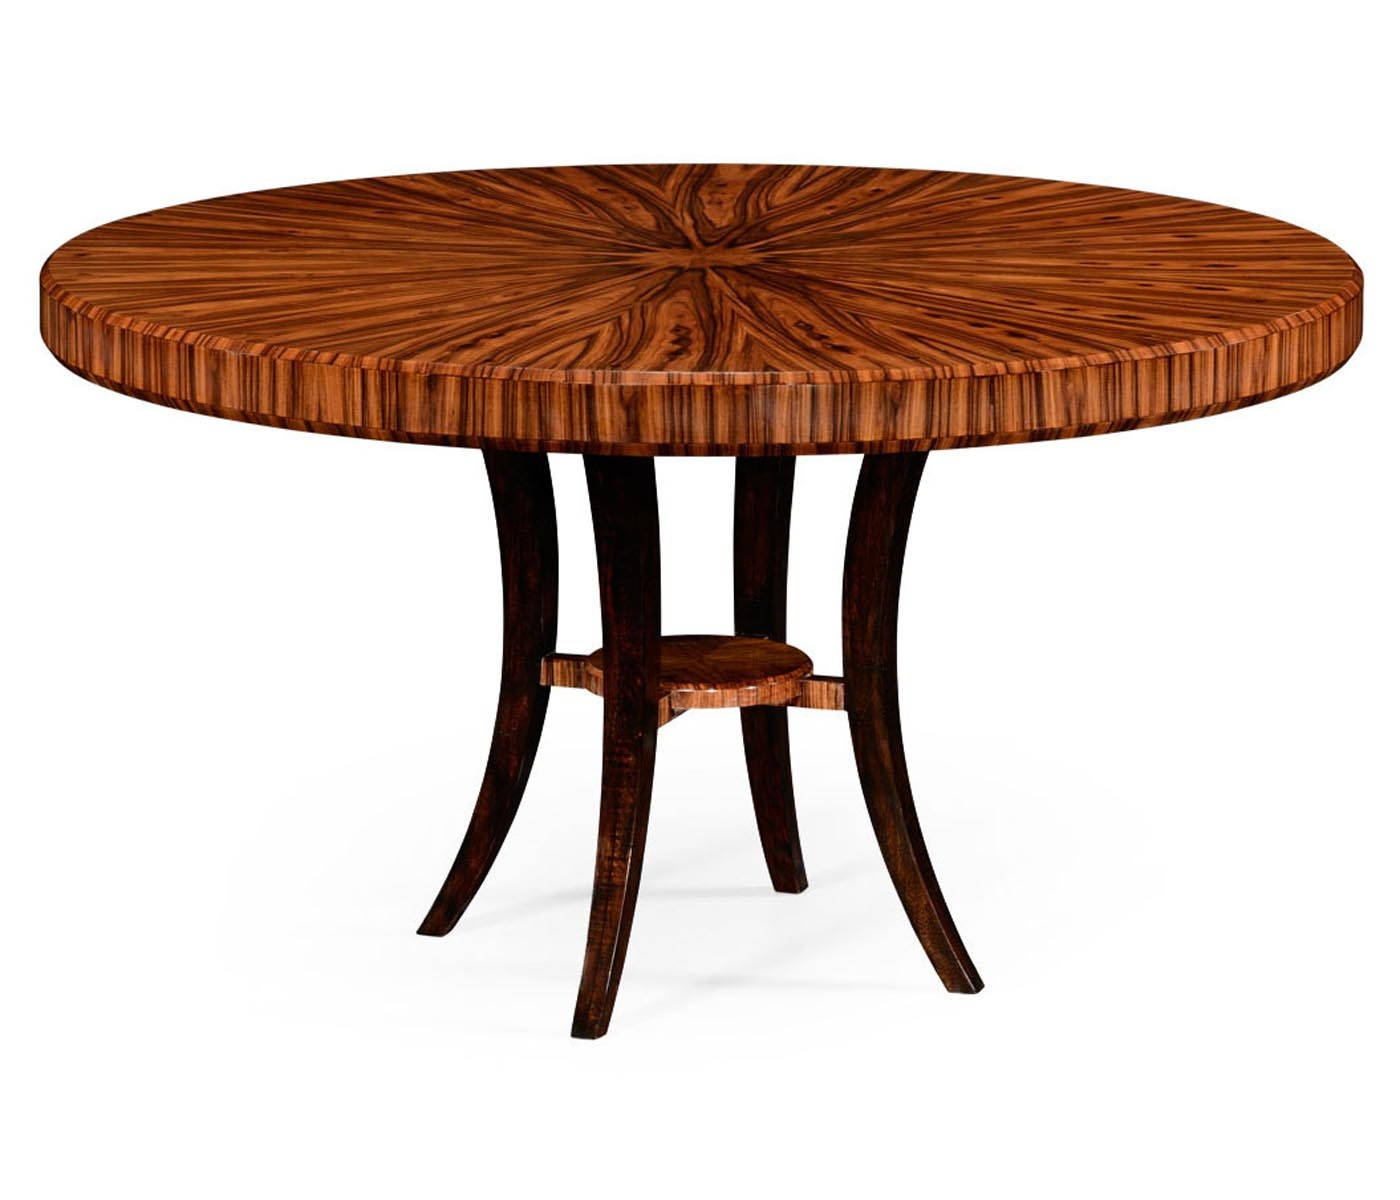 6 seater round dining table swanky interiors for Furniture dining table